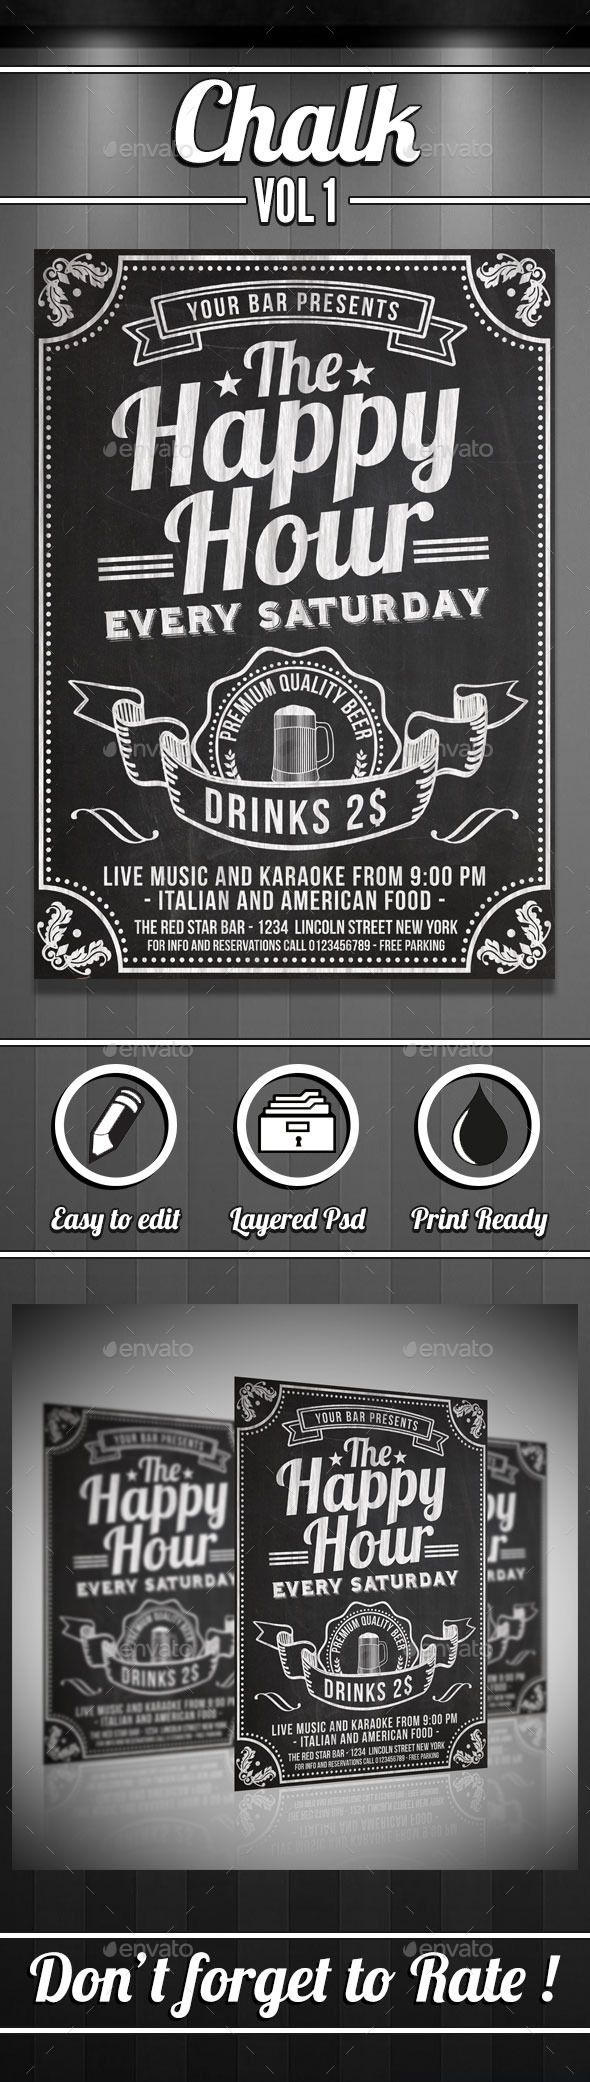 Happy Hour Chalkboard Flyer | Kreidetafel und Deko